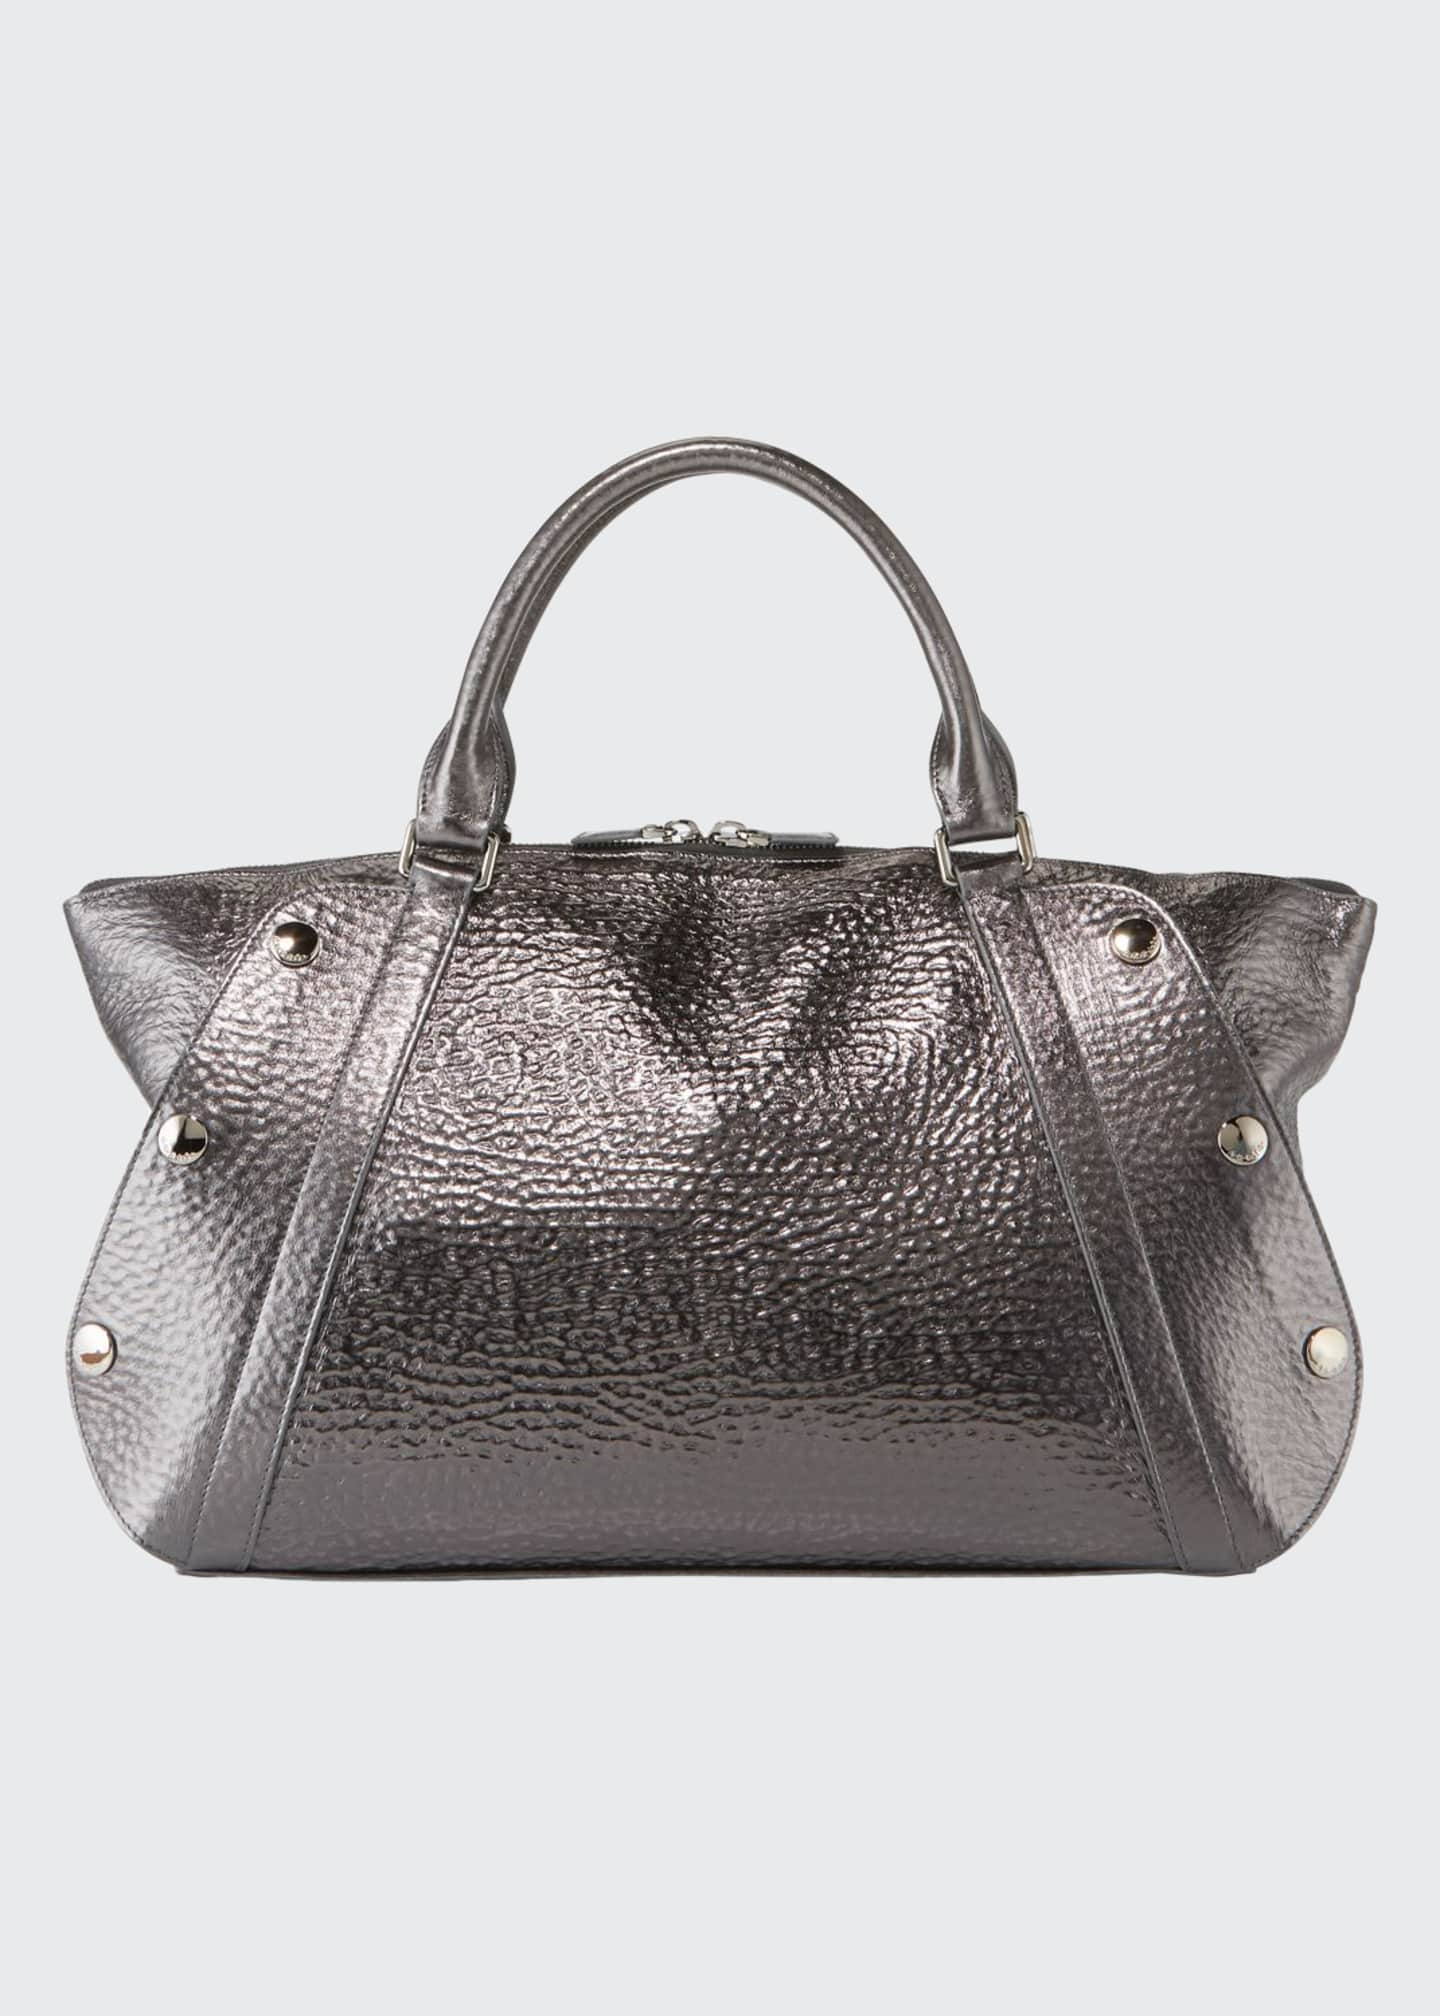 Akris Aimee Small Metallic Hammered Leather Satchel Bag